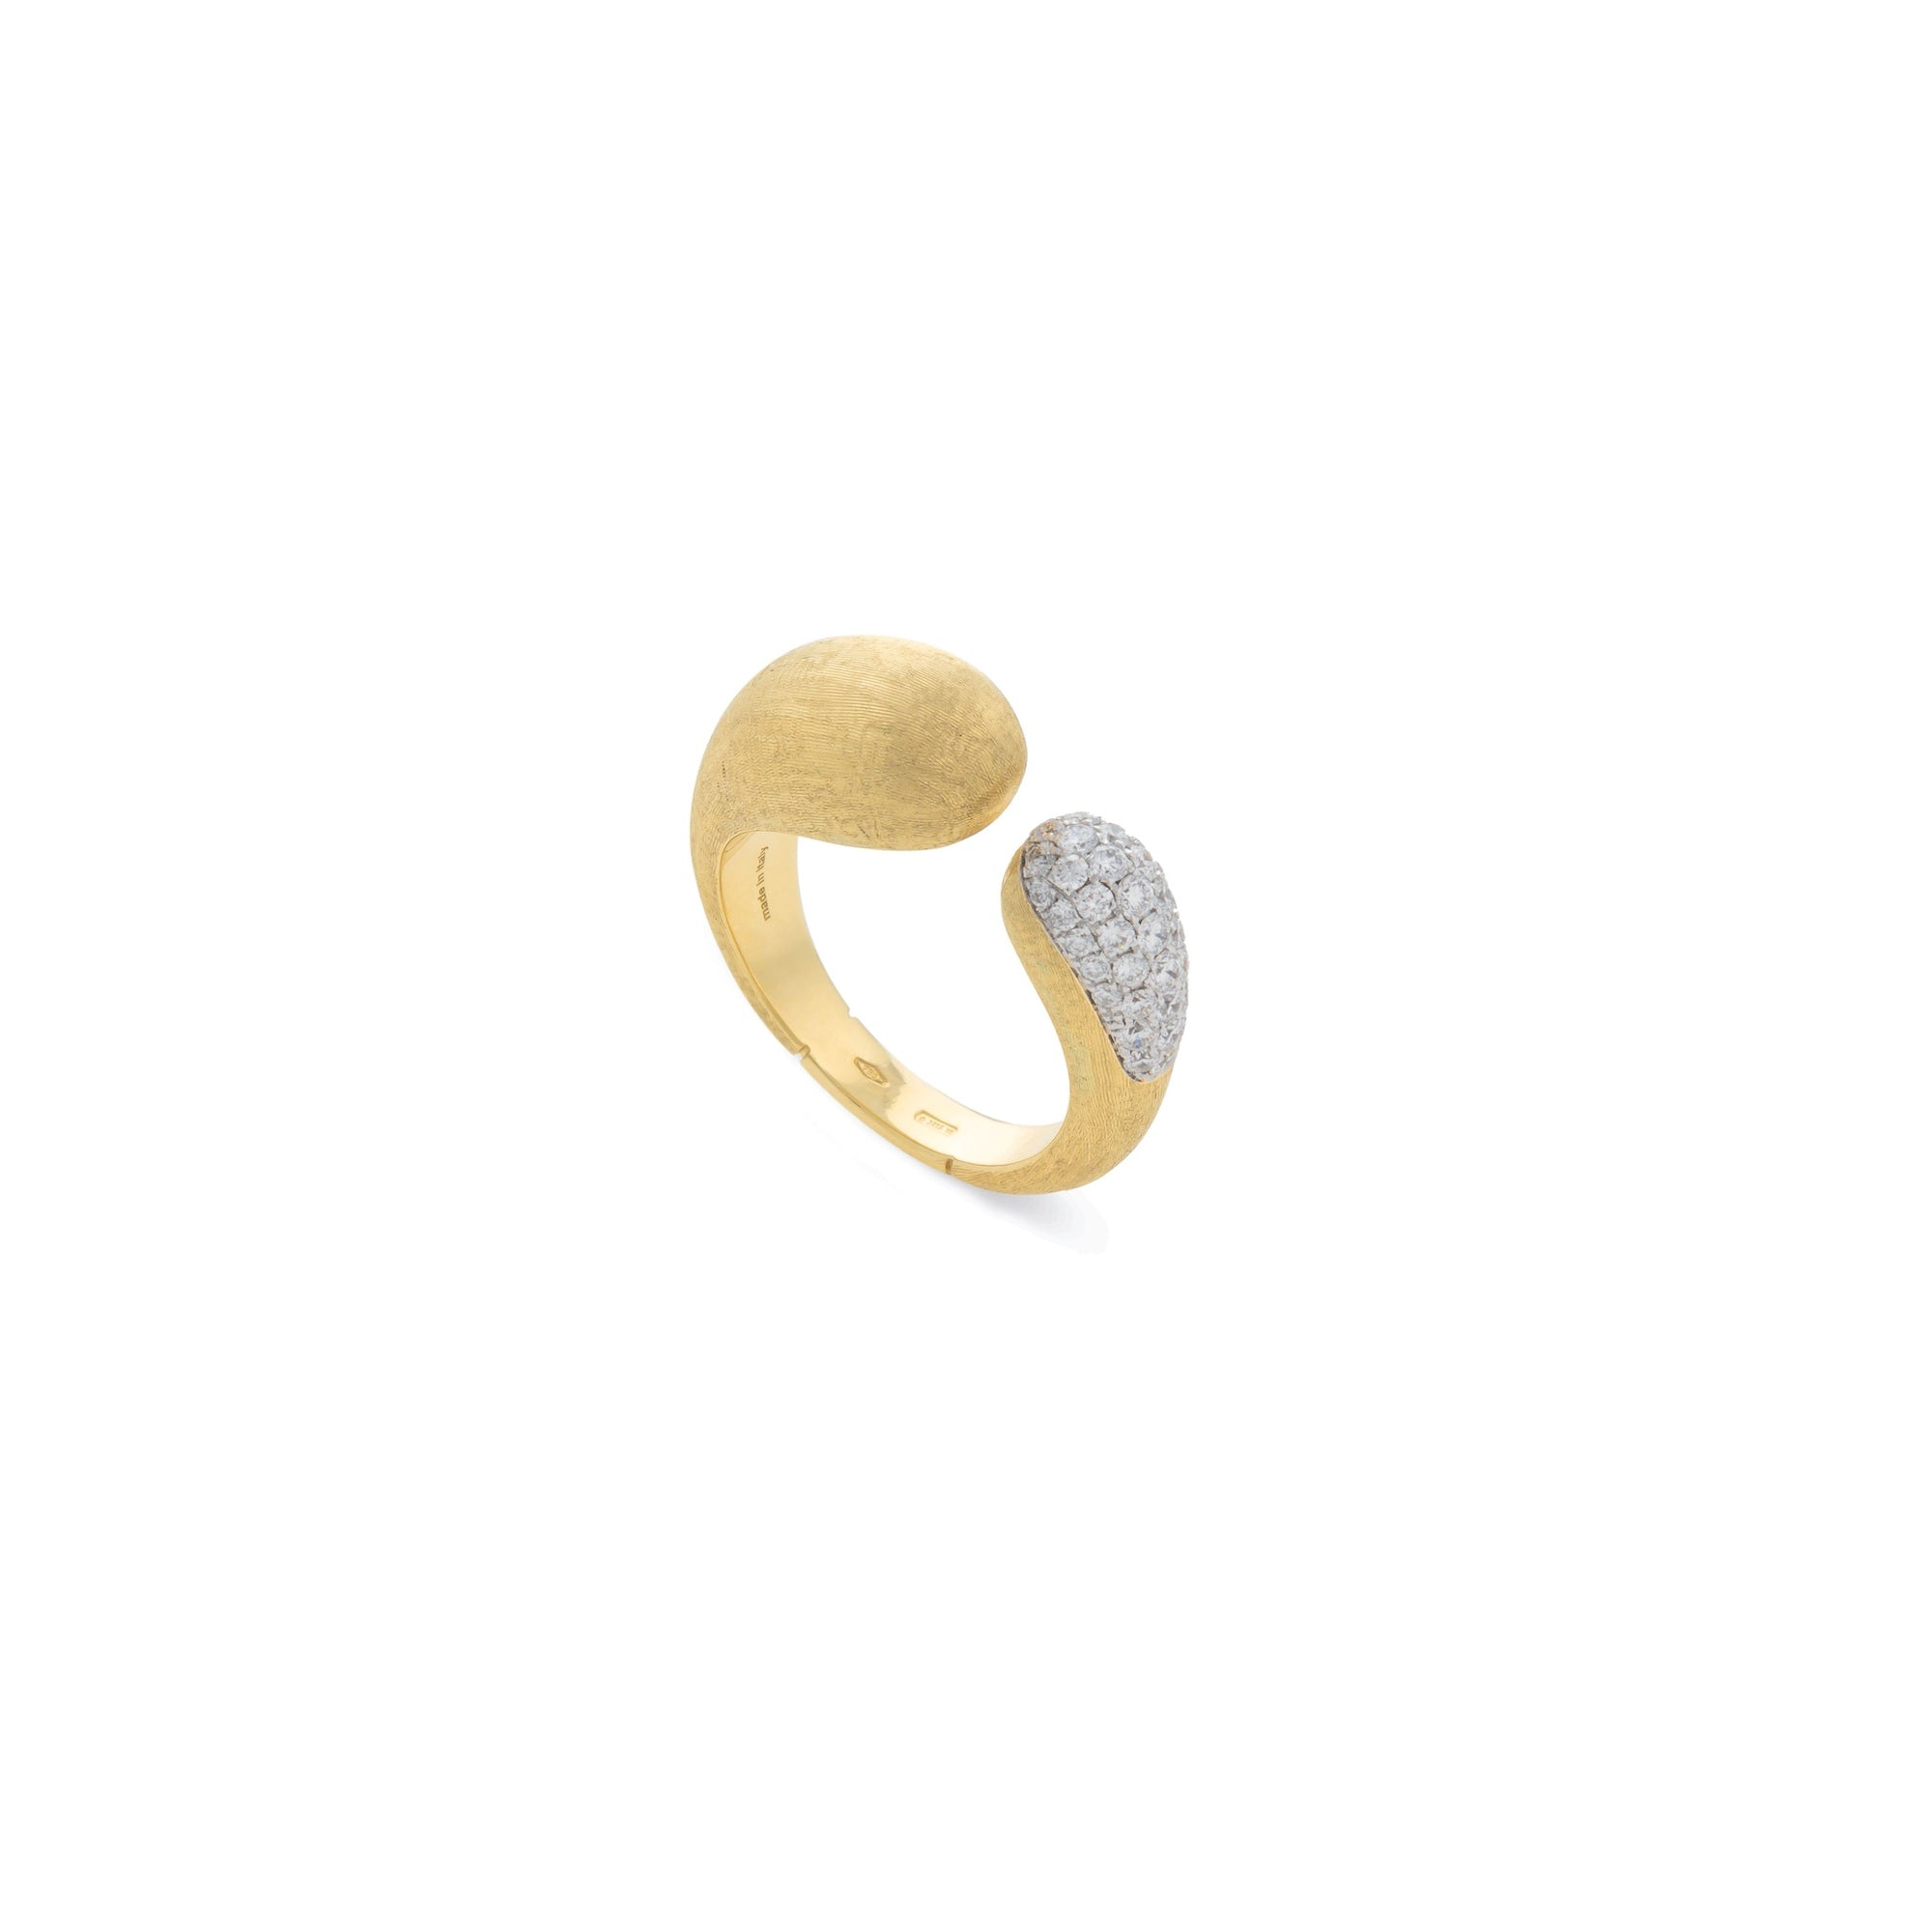 18K Yellow Gold and Diamond Kissing Ring